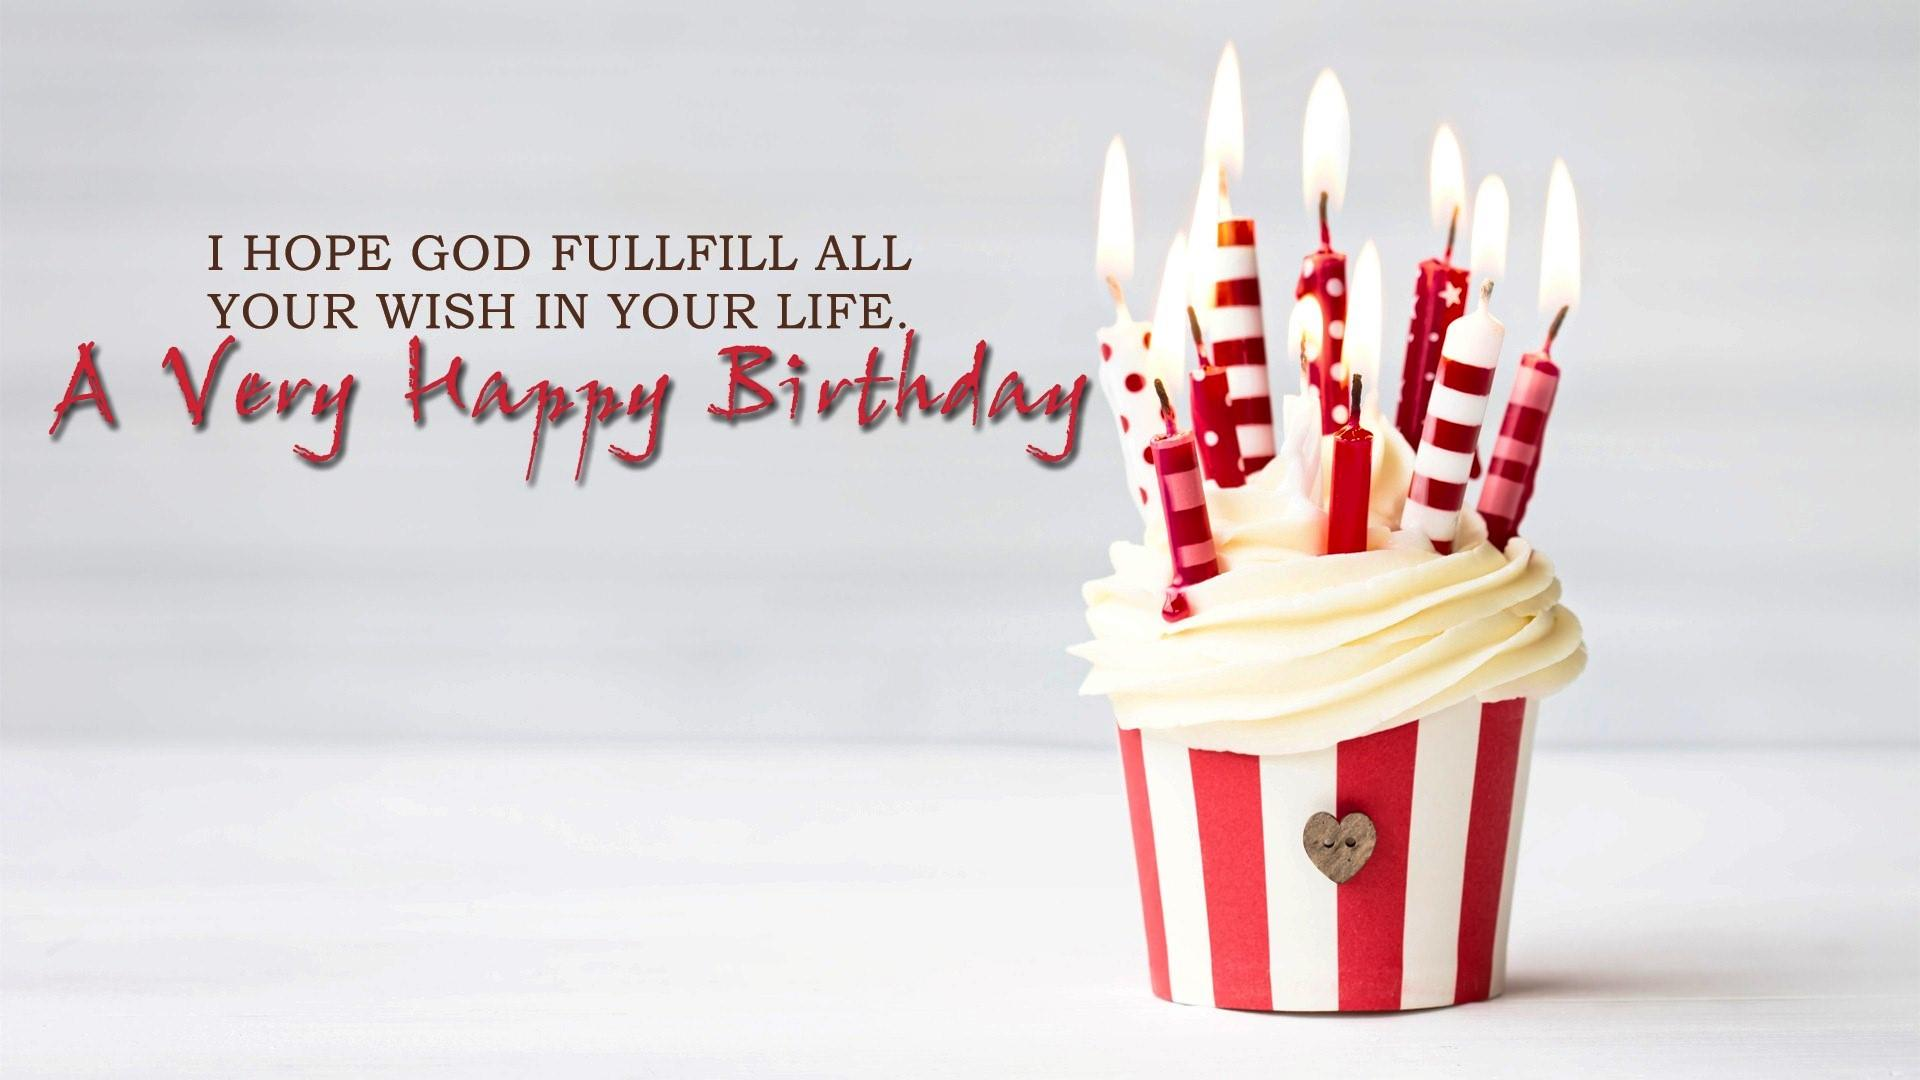 Happy-Birthday-Wishing-Quote-Greetings-HD-Wallpapers-15224455-1920x1080